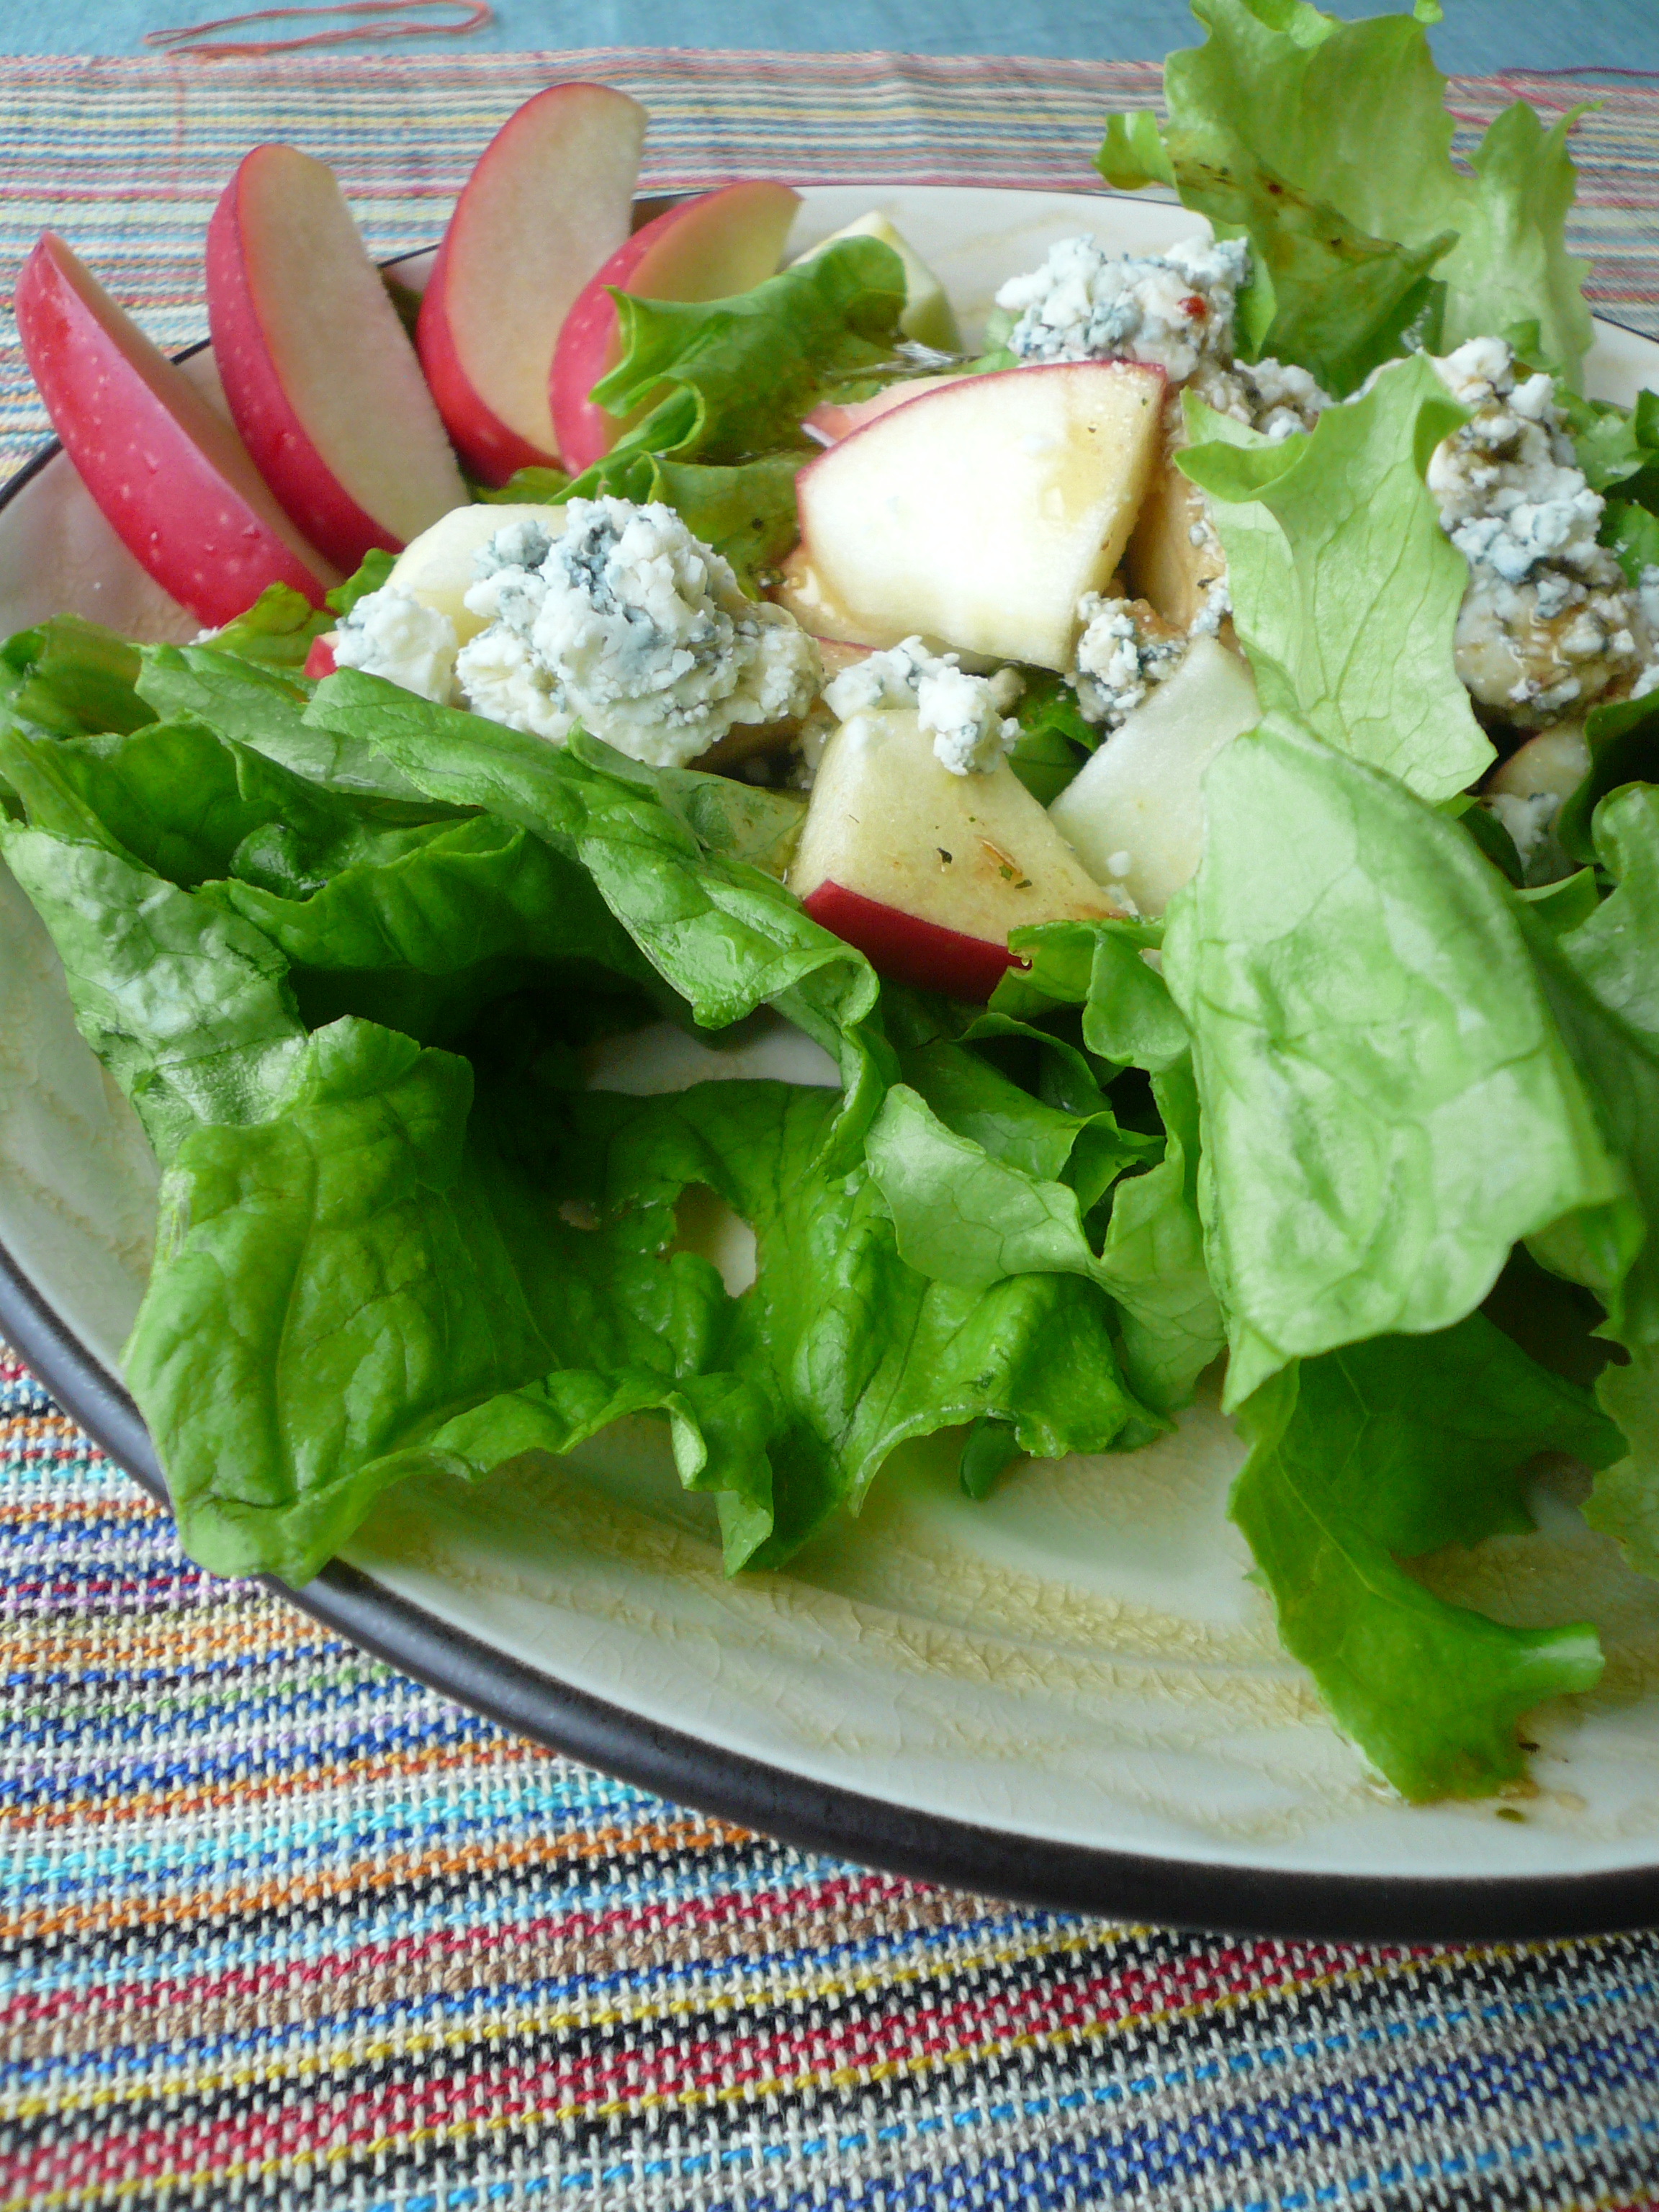 Farmer's Market Salad with Raspberry Vinaigrette